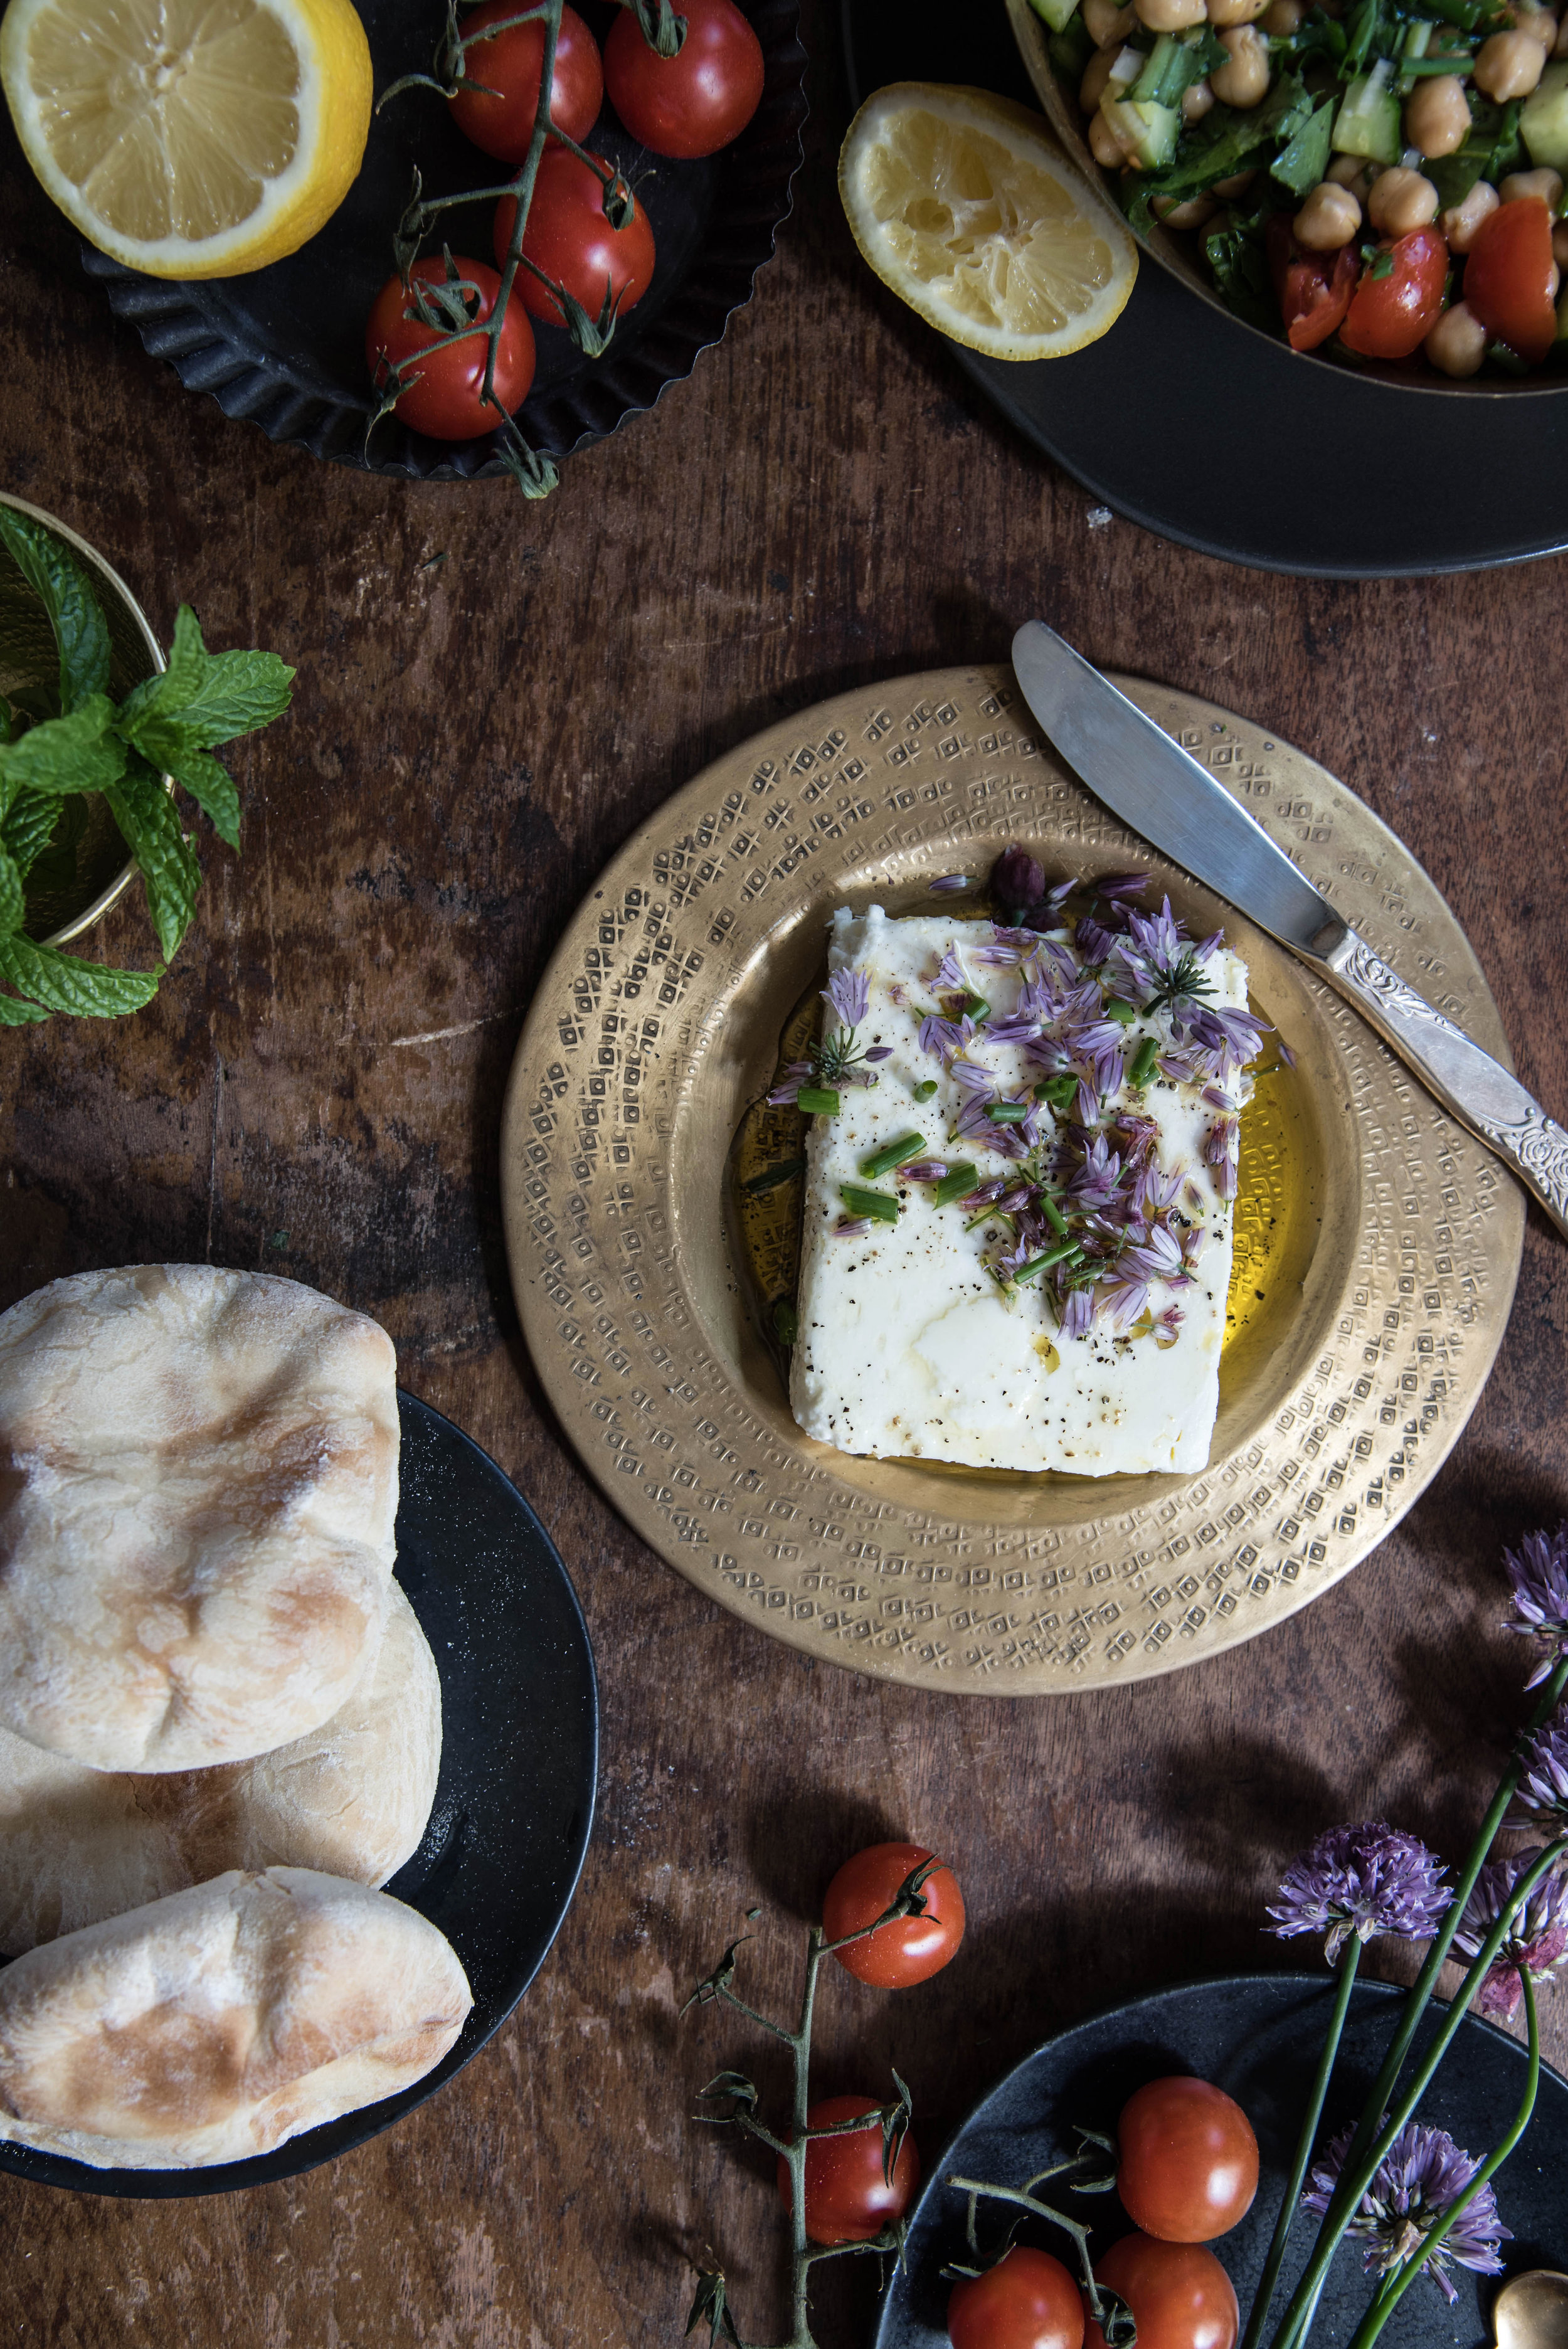 ROSE & IVY Journal Middle Eastern Spread Feta with Chives